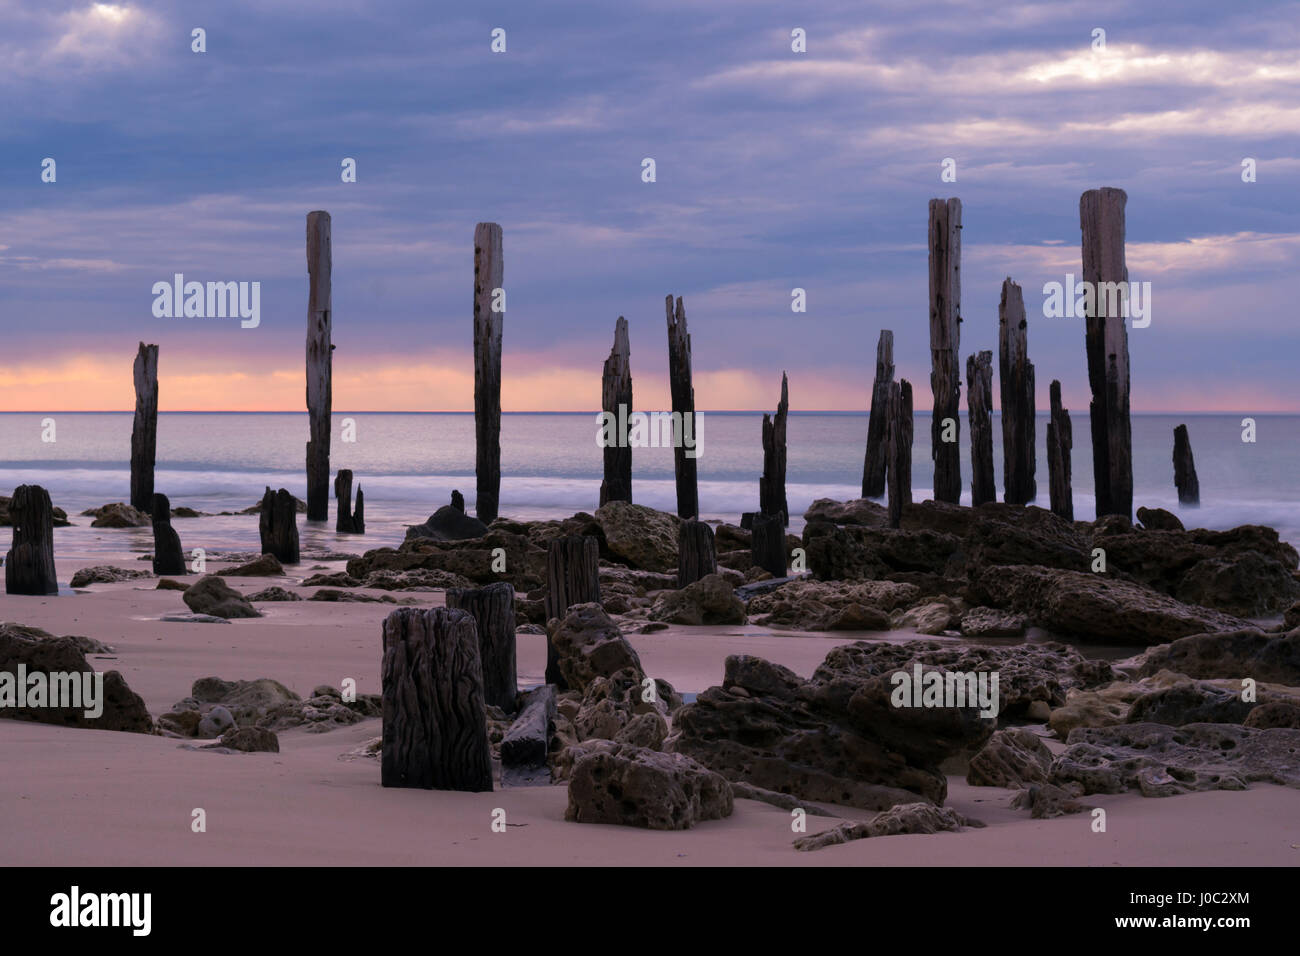 The jetty ruins at Port Willunga, South Australia at sunset. Slow shutter speed providing that smooth tranquil look - Stock Image